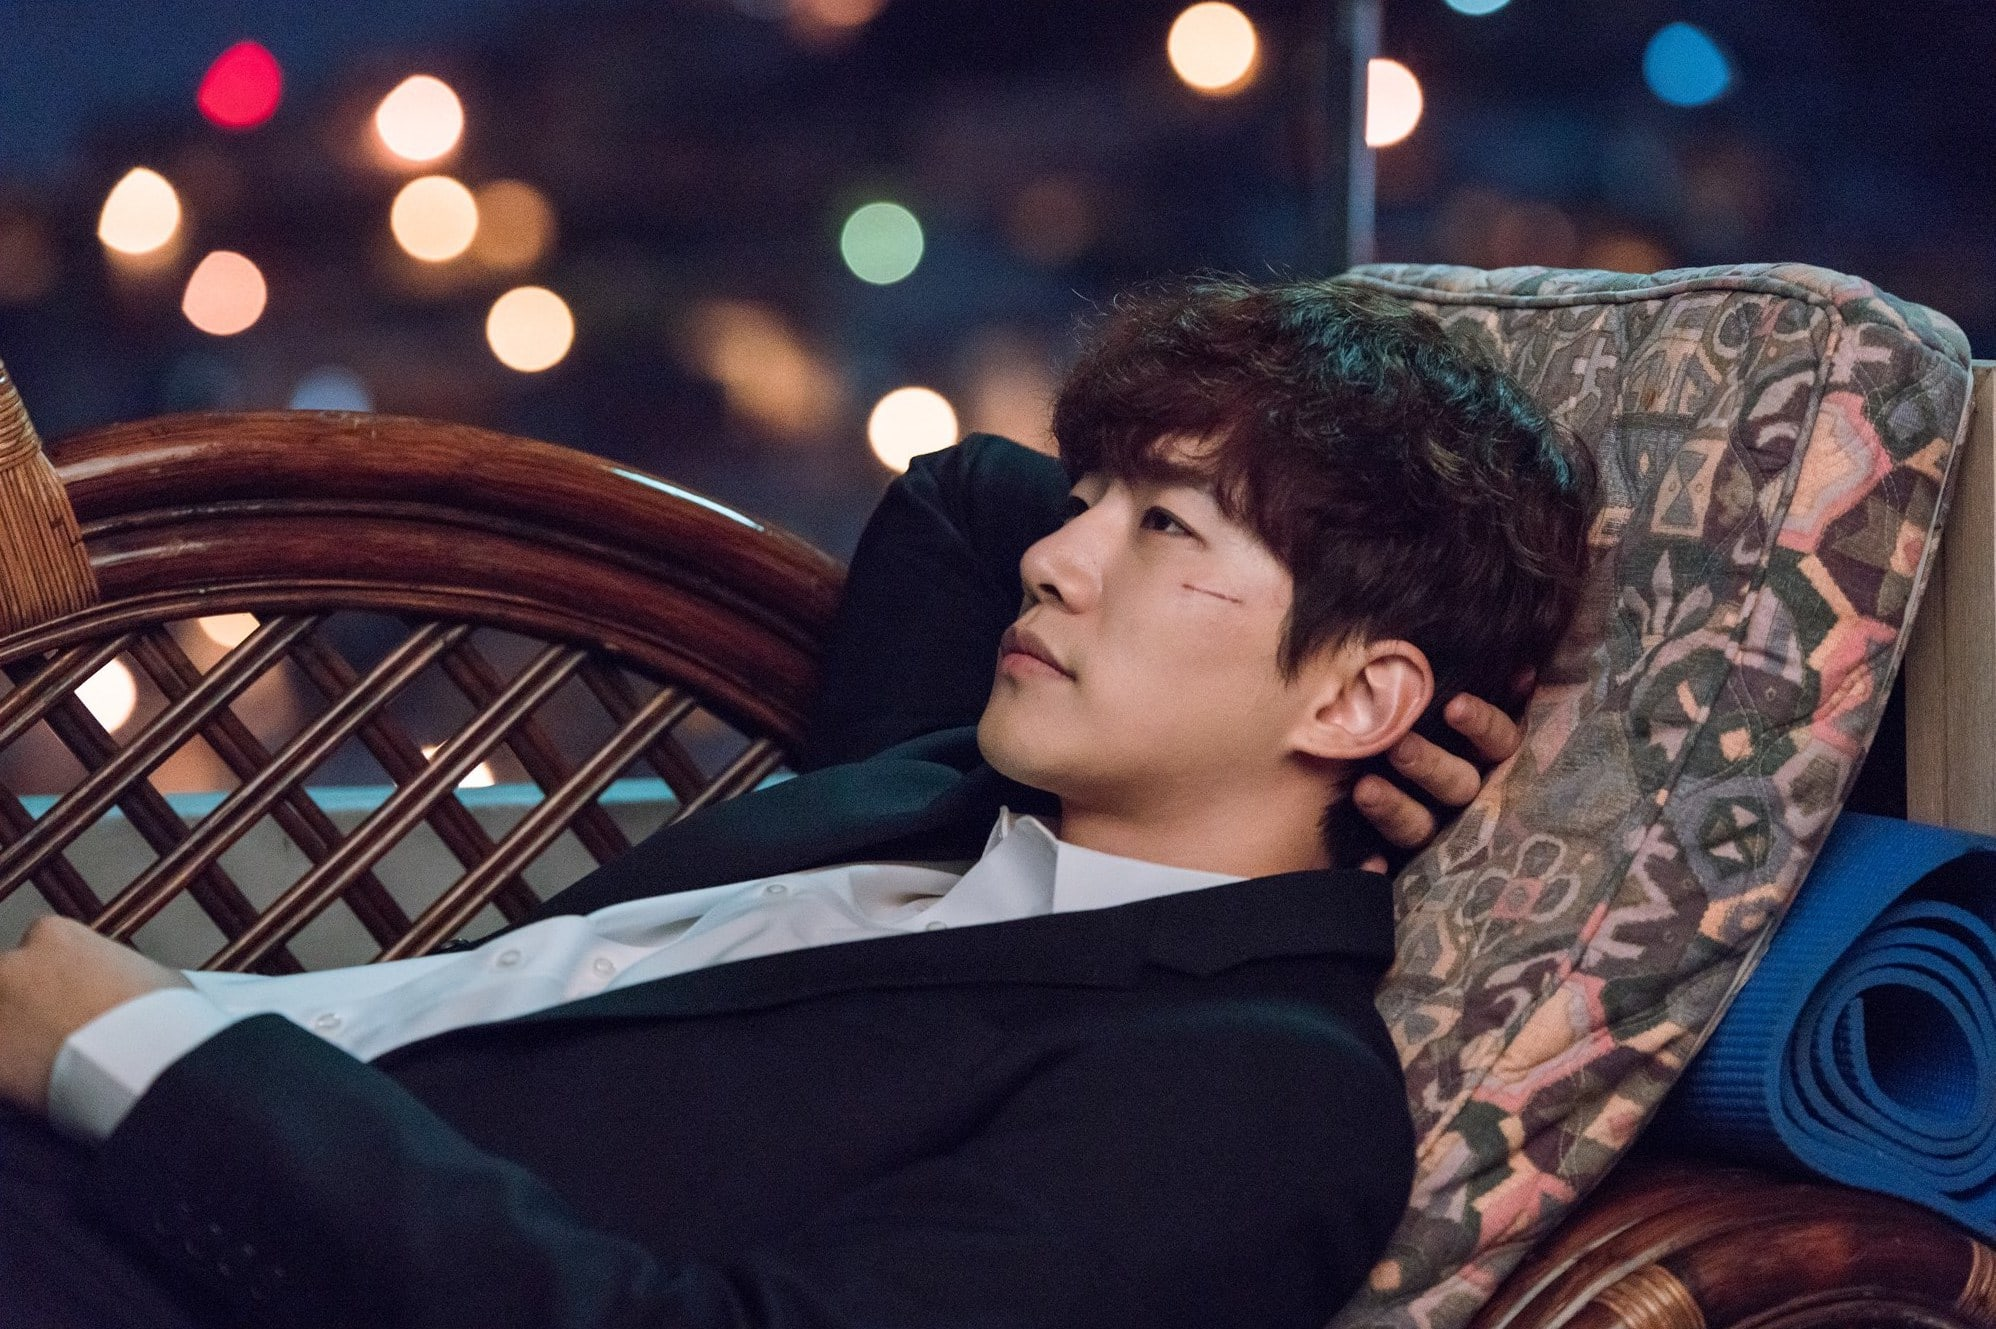 """2PM's Junho Makes Emotional Transformation In New Stills For """"Just Between Lovers"""""""